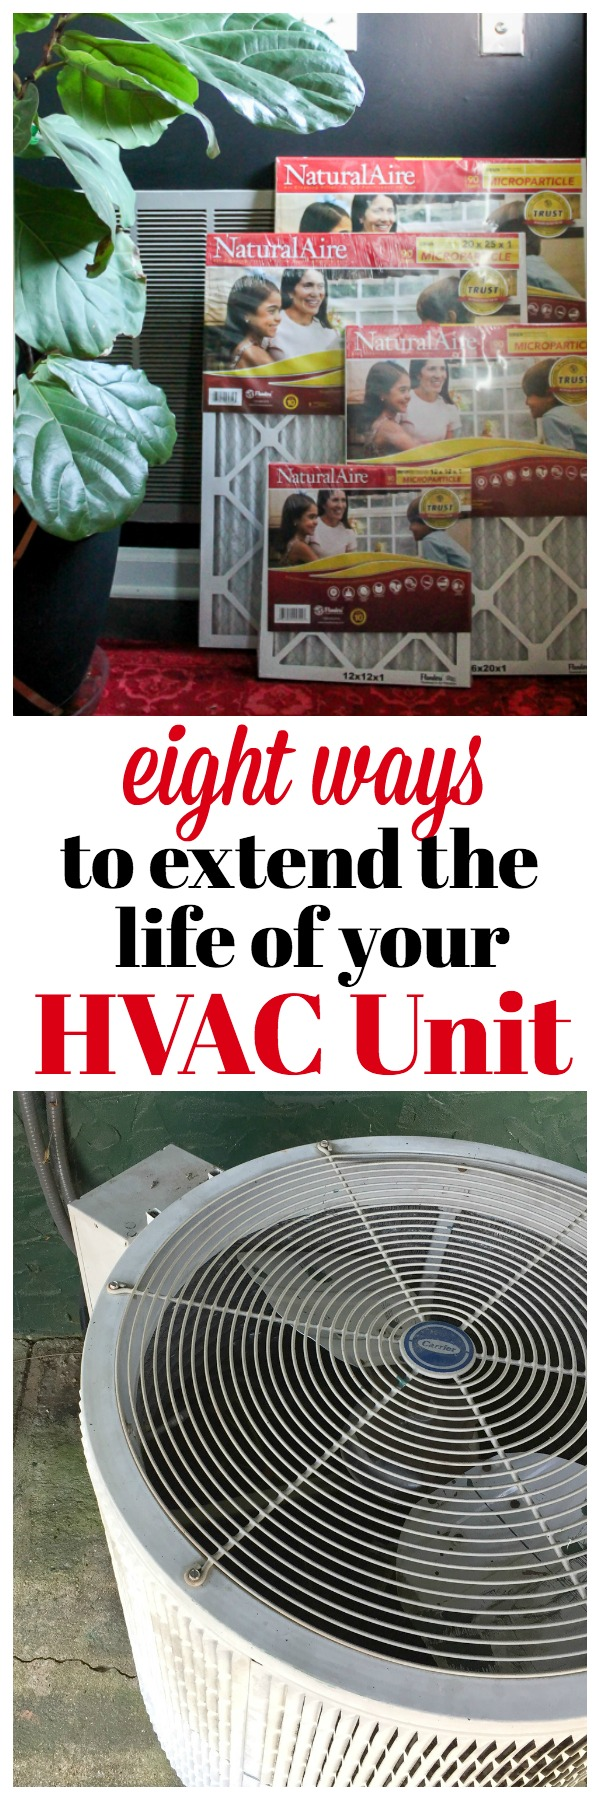 Make your HVAC unit go the extra mile with these eight ways to extend the life of your HVAC unit. Most are simple things you can do to save you money.